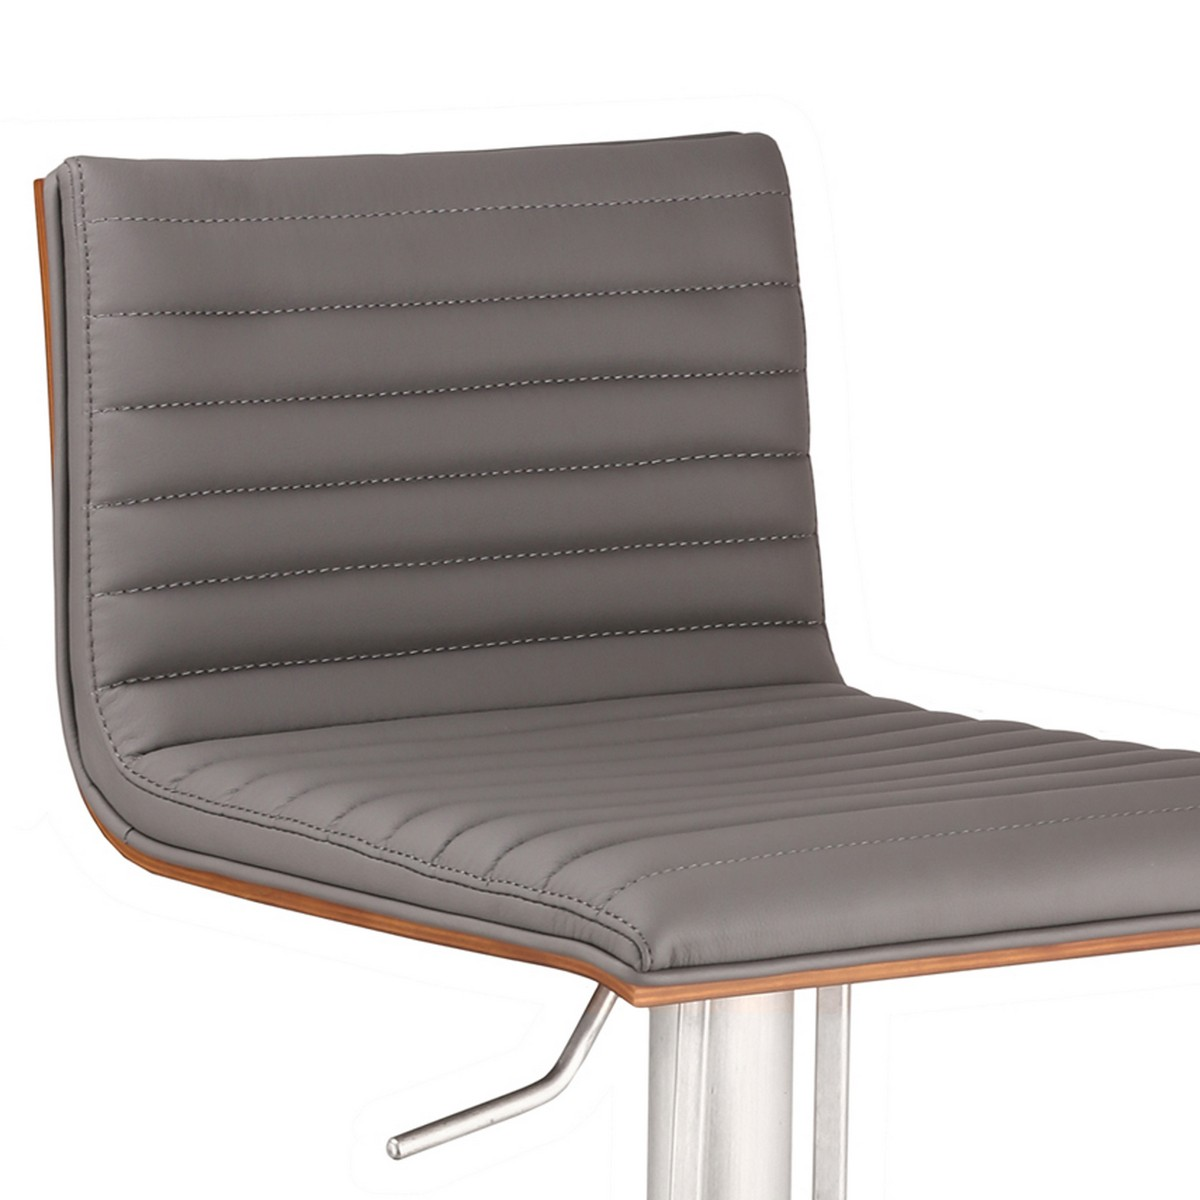 Armen Living Cafe Adjustable Brushed Stainless Steel Barstool in Gray Leatherette with Walnut Back